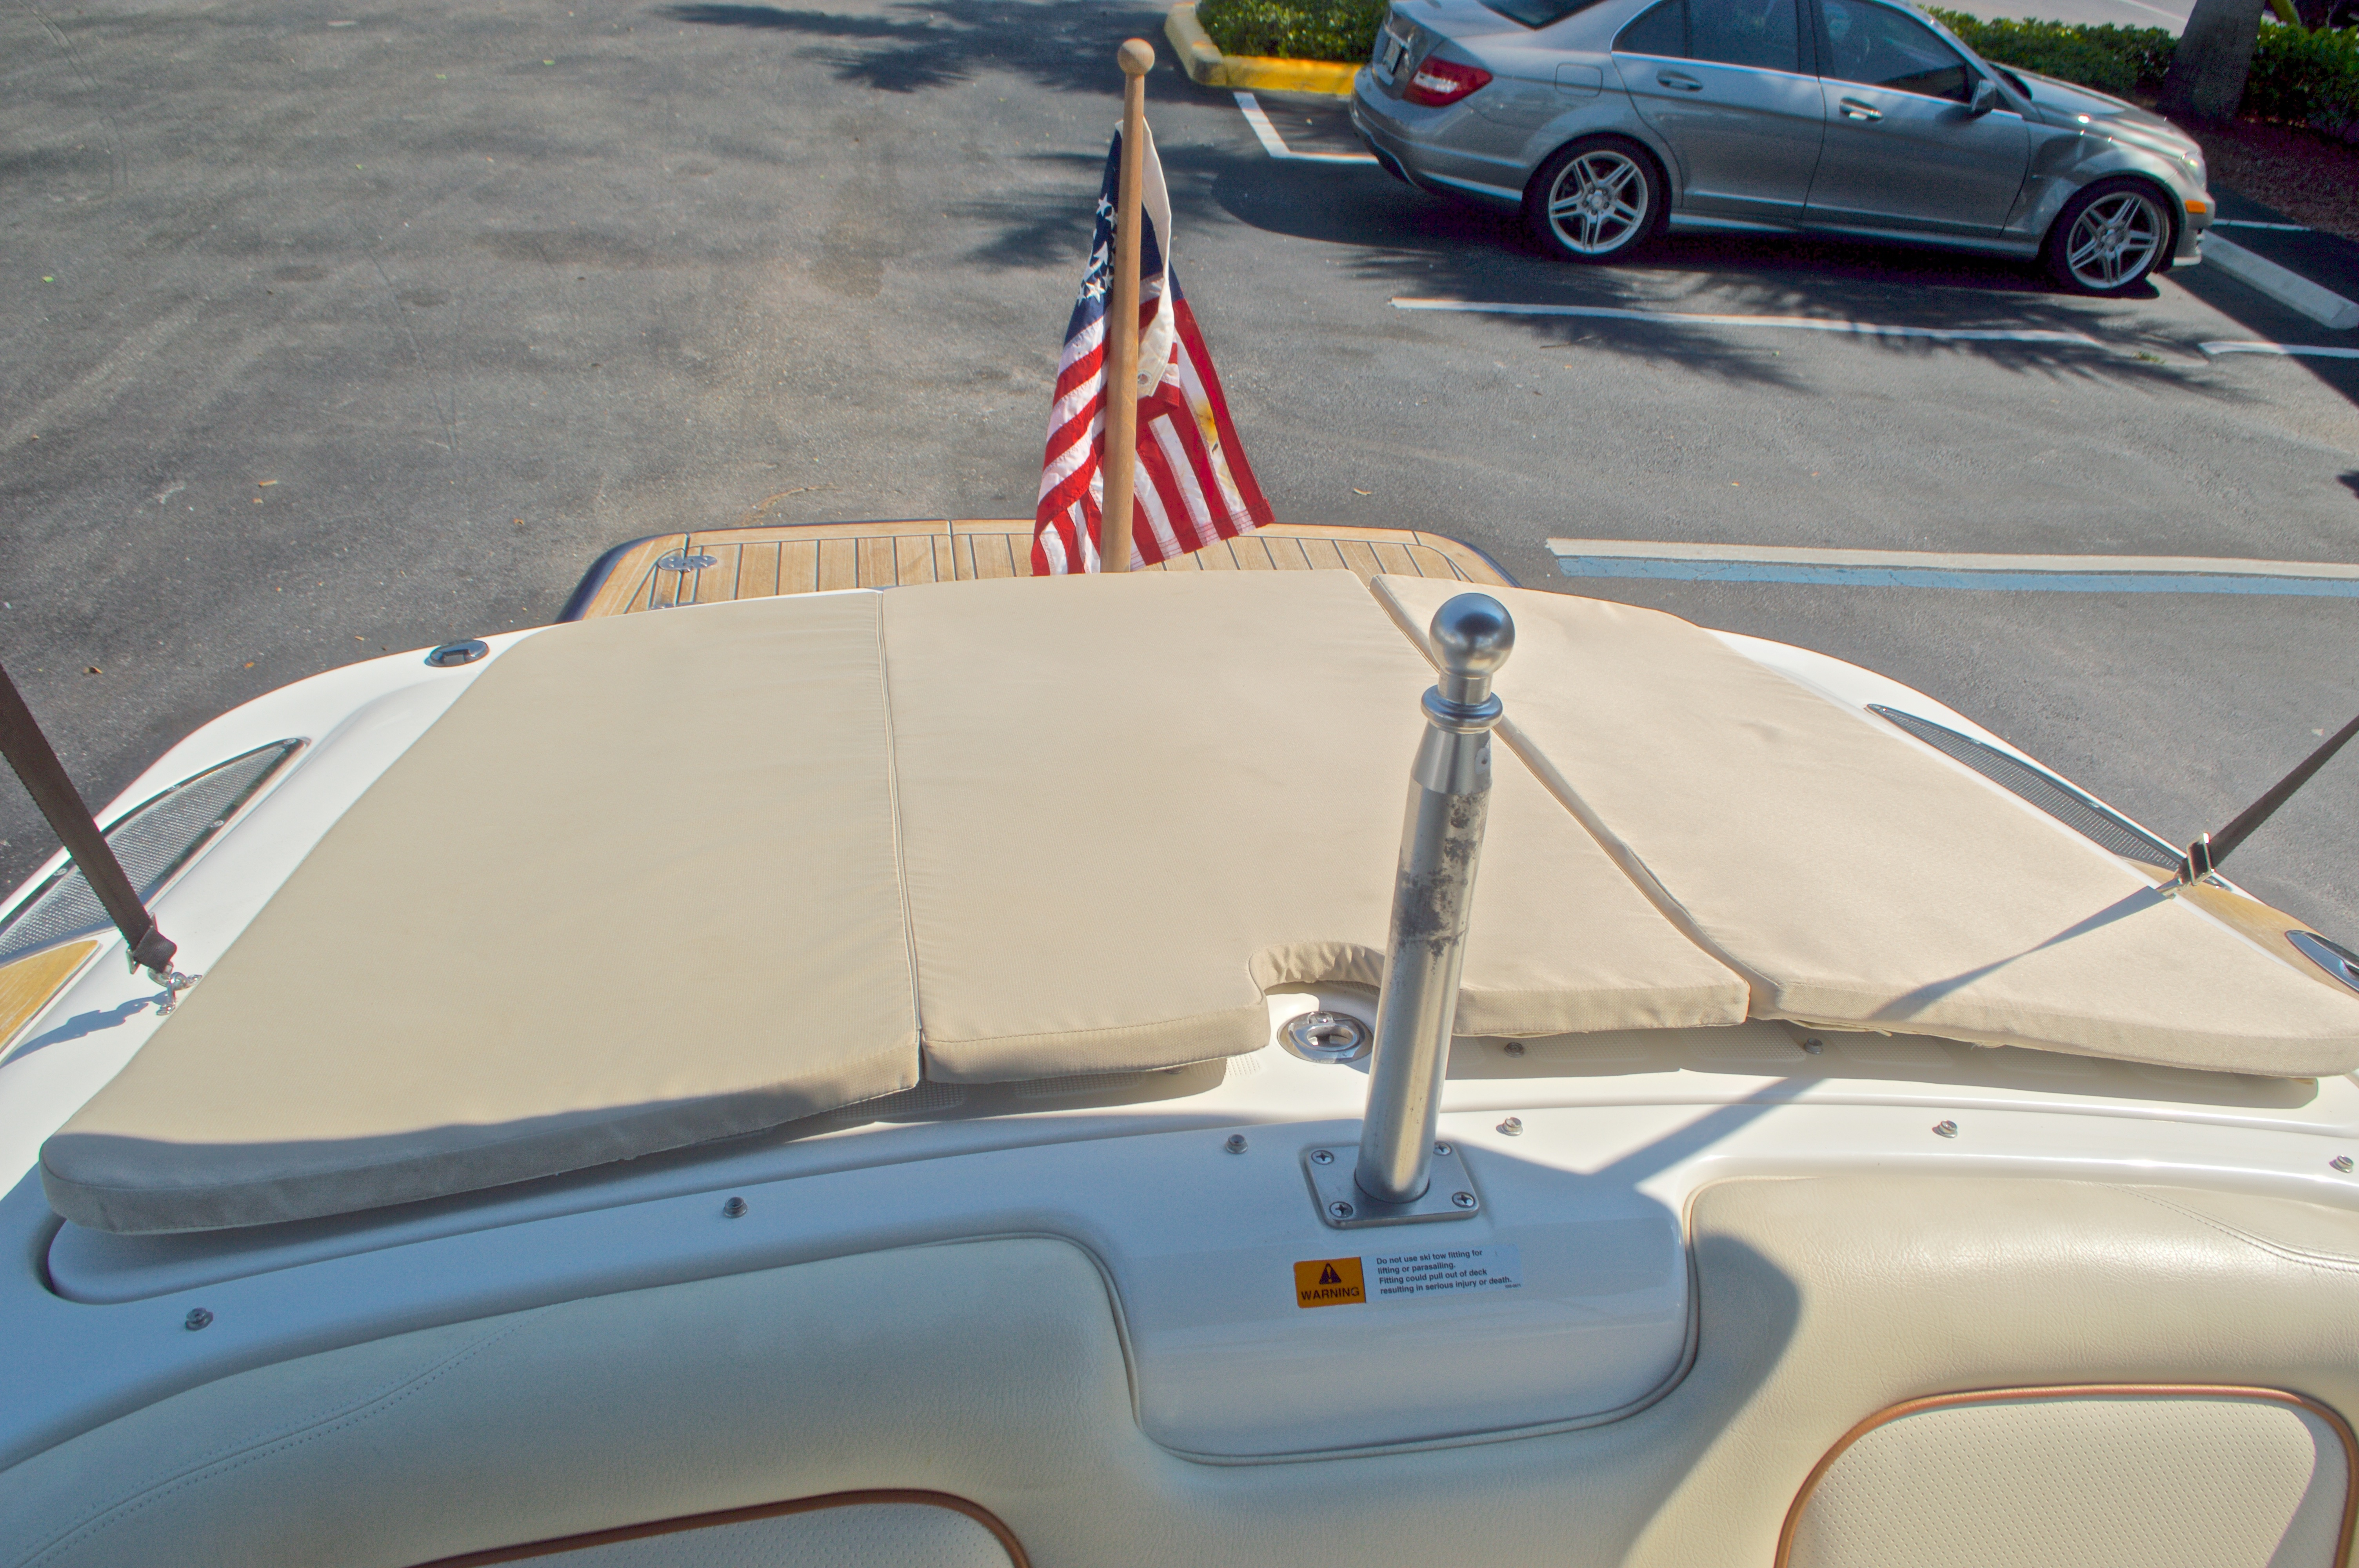 Thumbnail 22 for Used 2007 Chris-Craft 20 Speedster boat for sale in West Palm Beach, FL